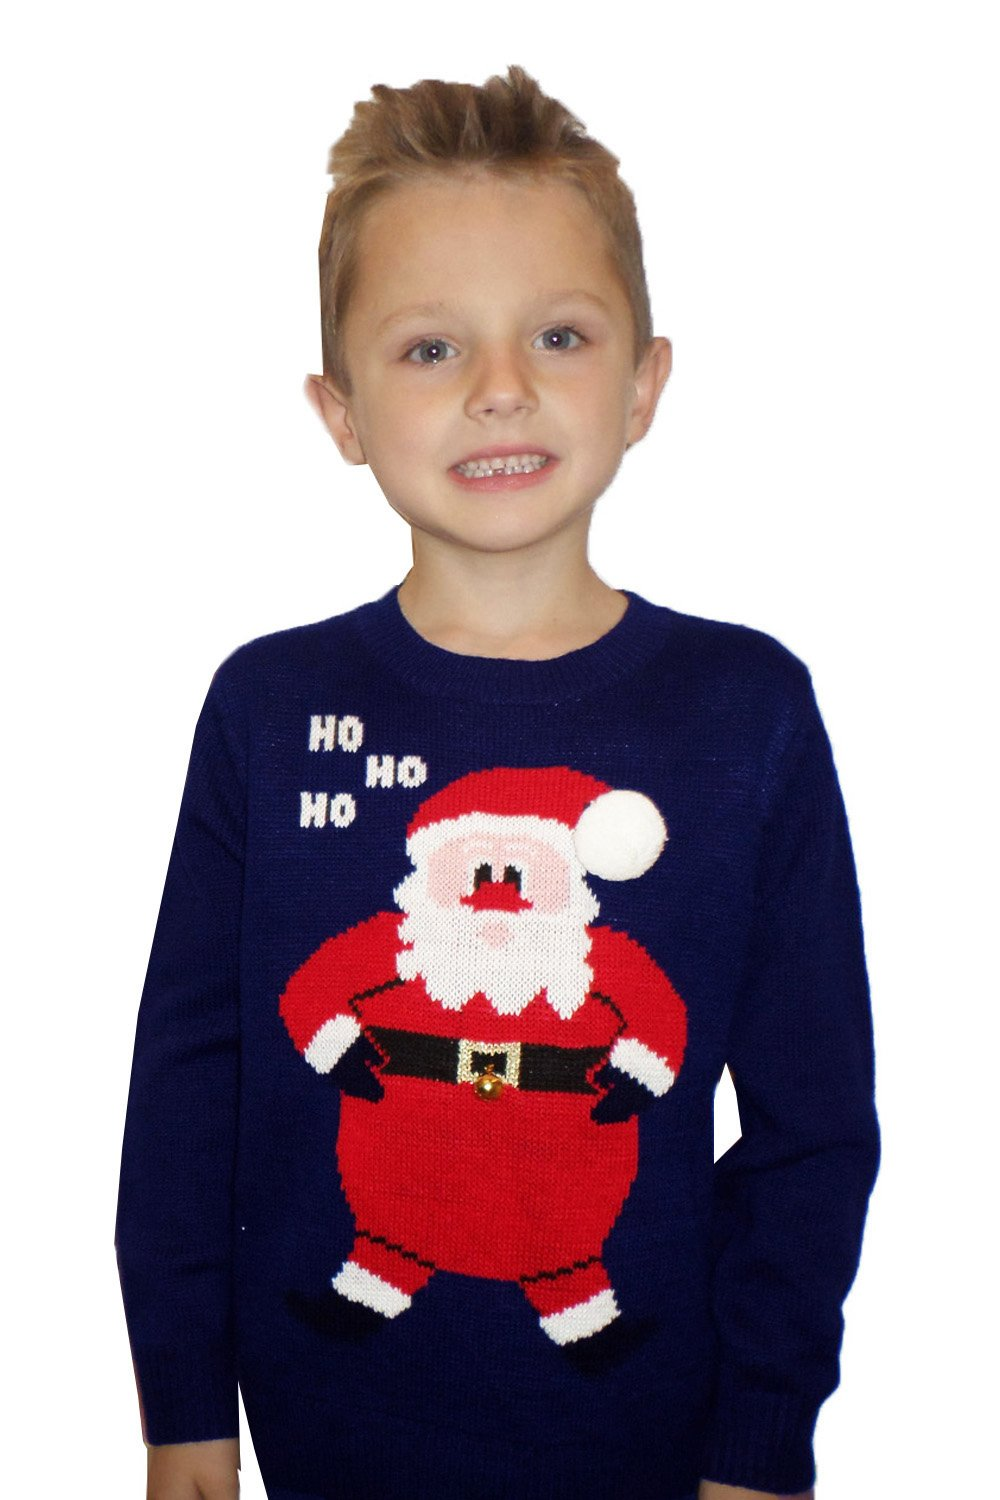 Boys Girls 3D Novelty Knitted Crew Neck Christmas Jumper Visage